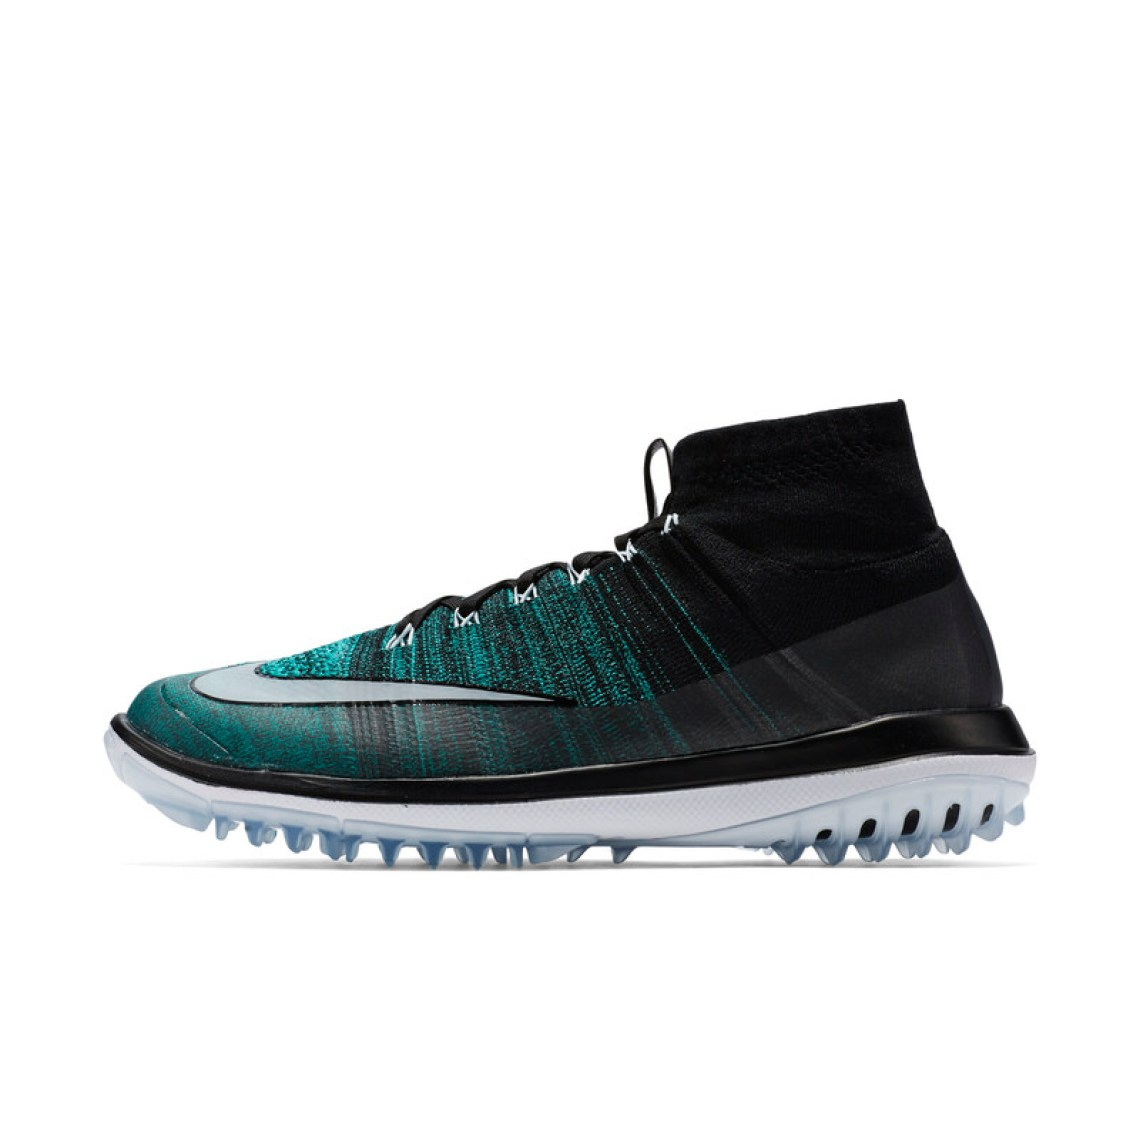 a0a6318b1cb8 Flyknit Continues to Make the Rounds on New Nike Golf Shoes